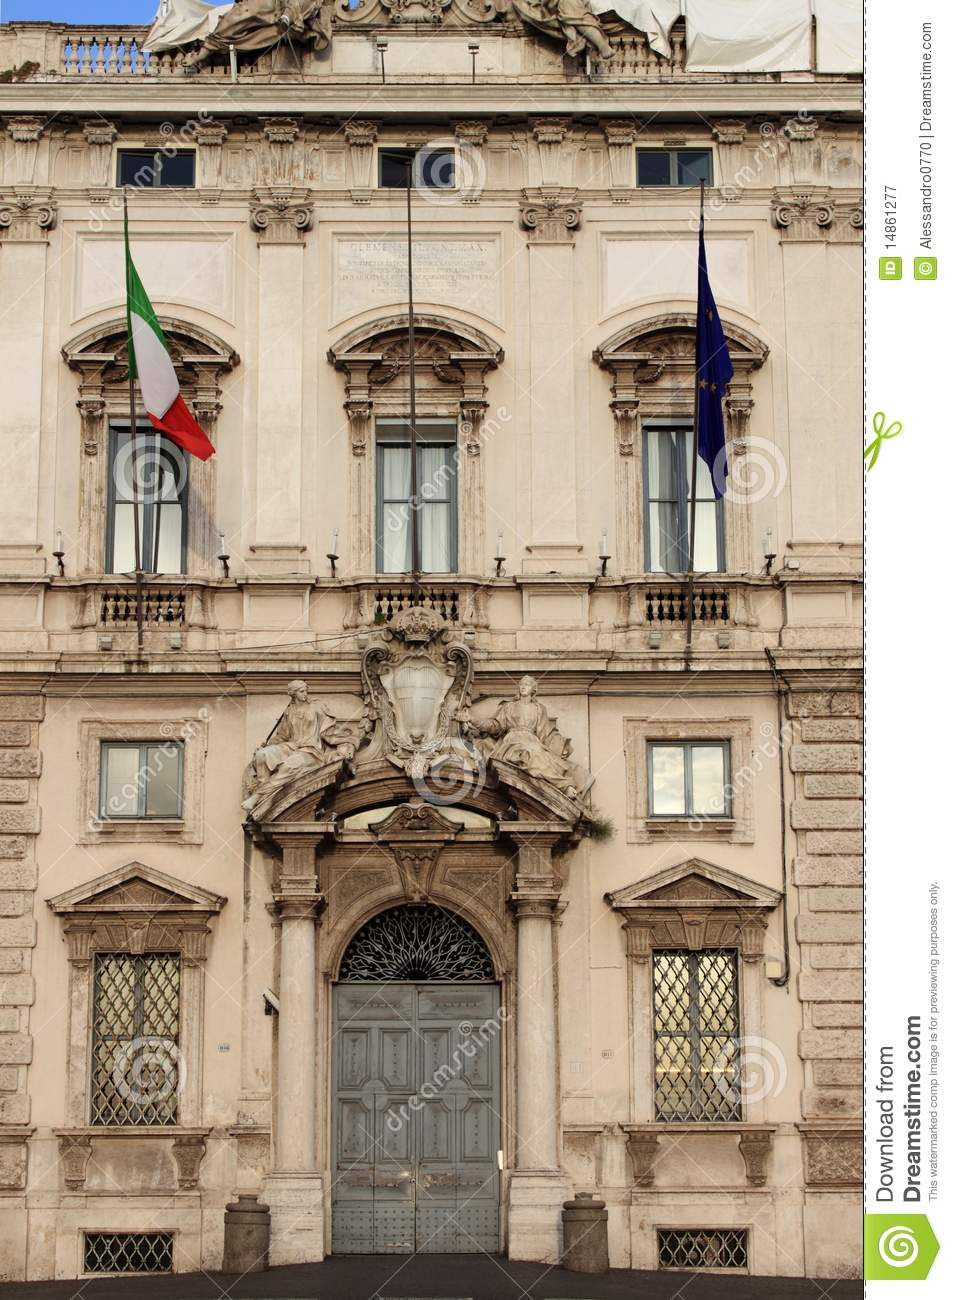 Constitutional Court palace in Rome